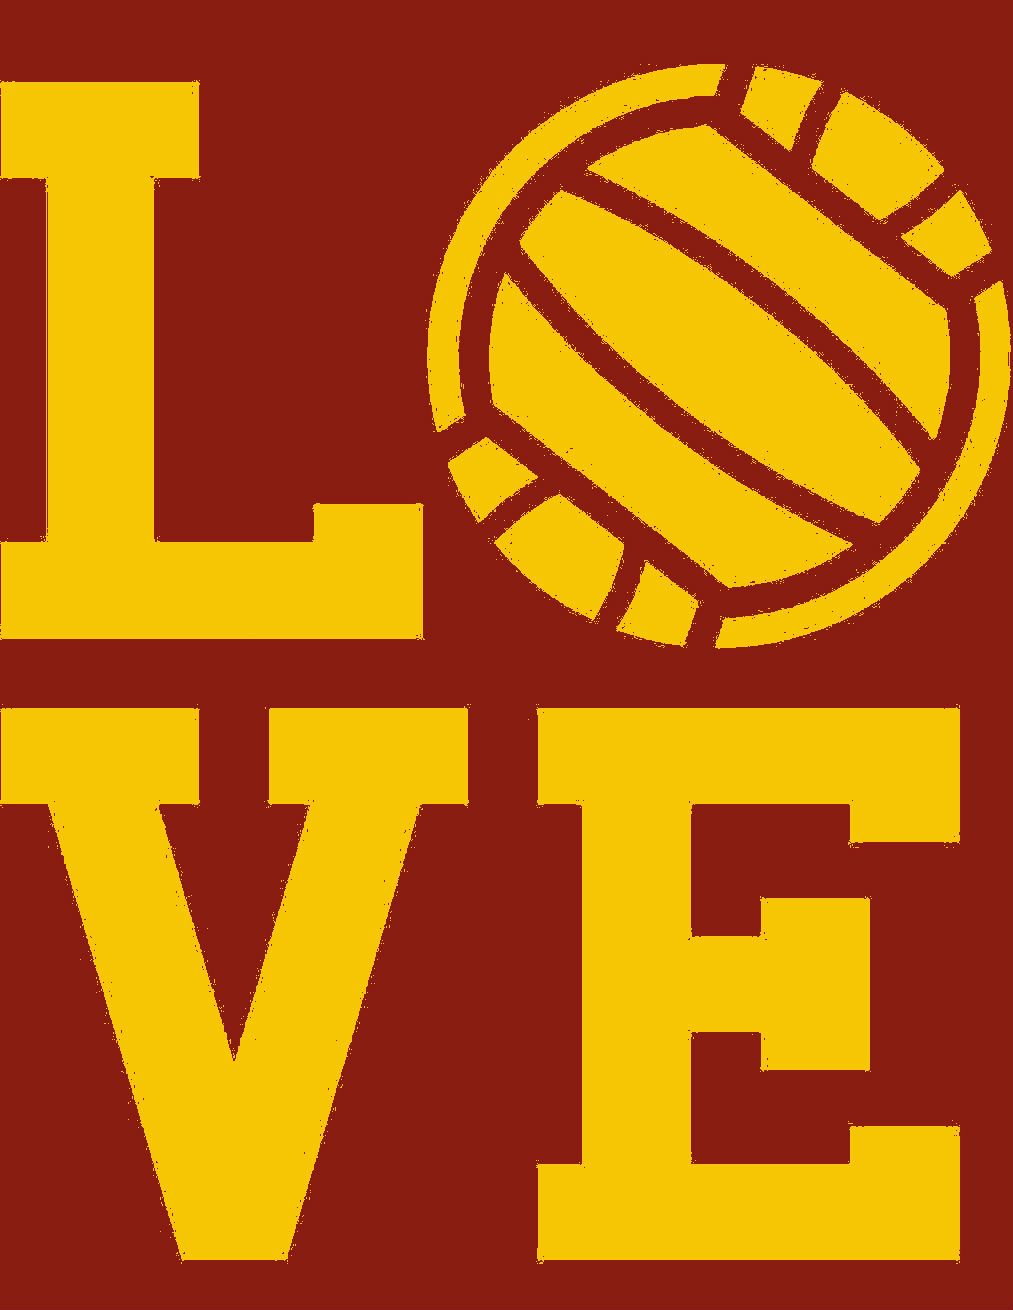 Mn Gopher Love I Love Volleyball Mn Gophers Volleyball Dream School